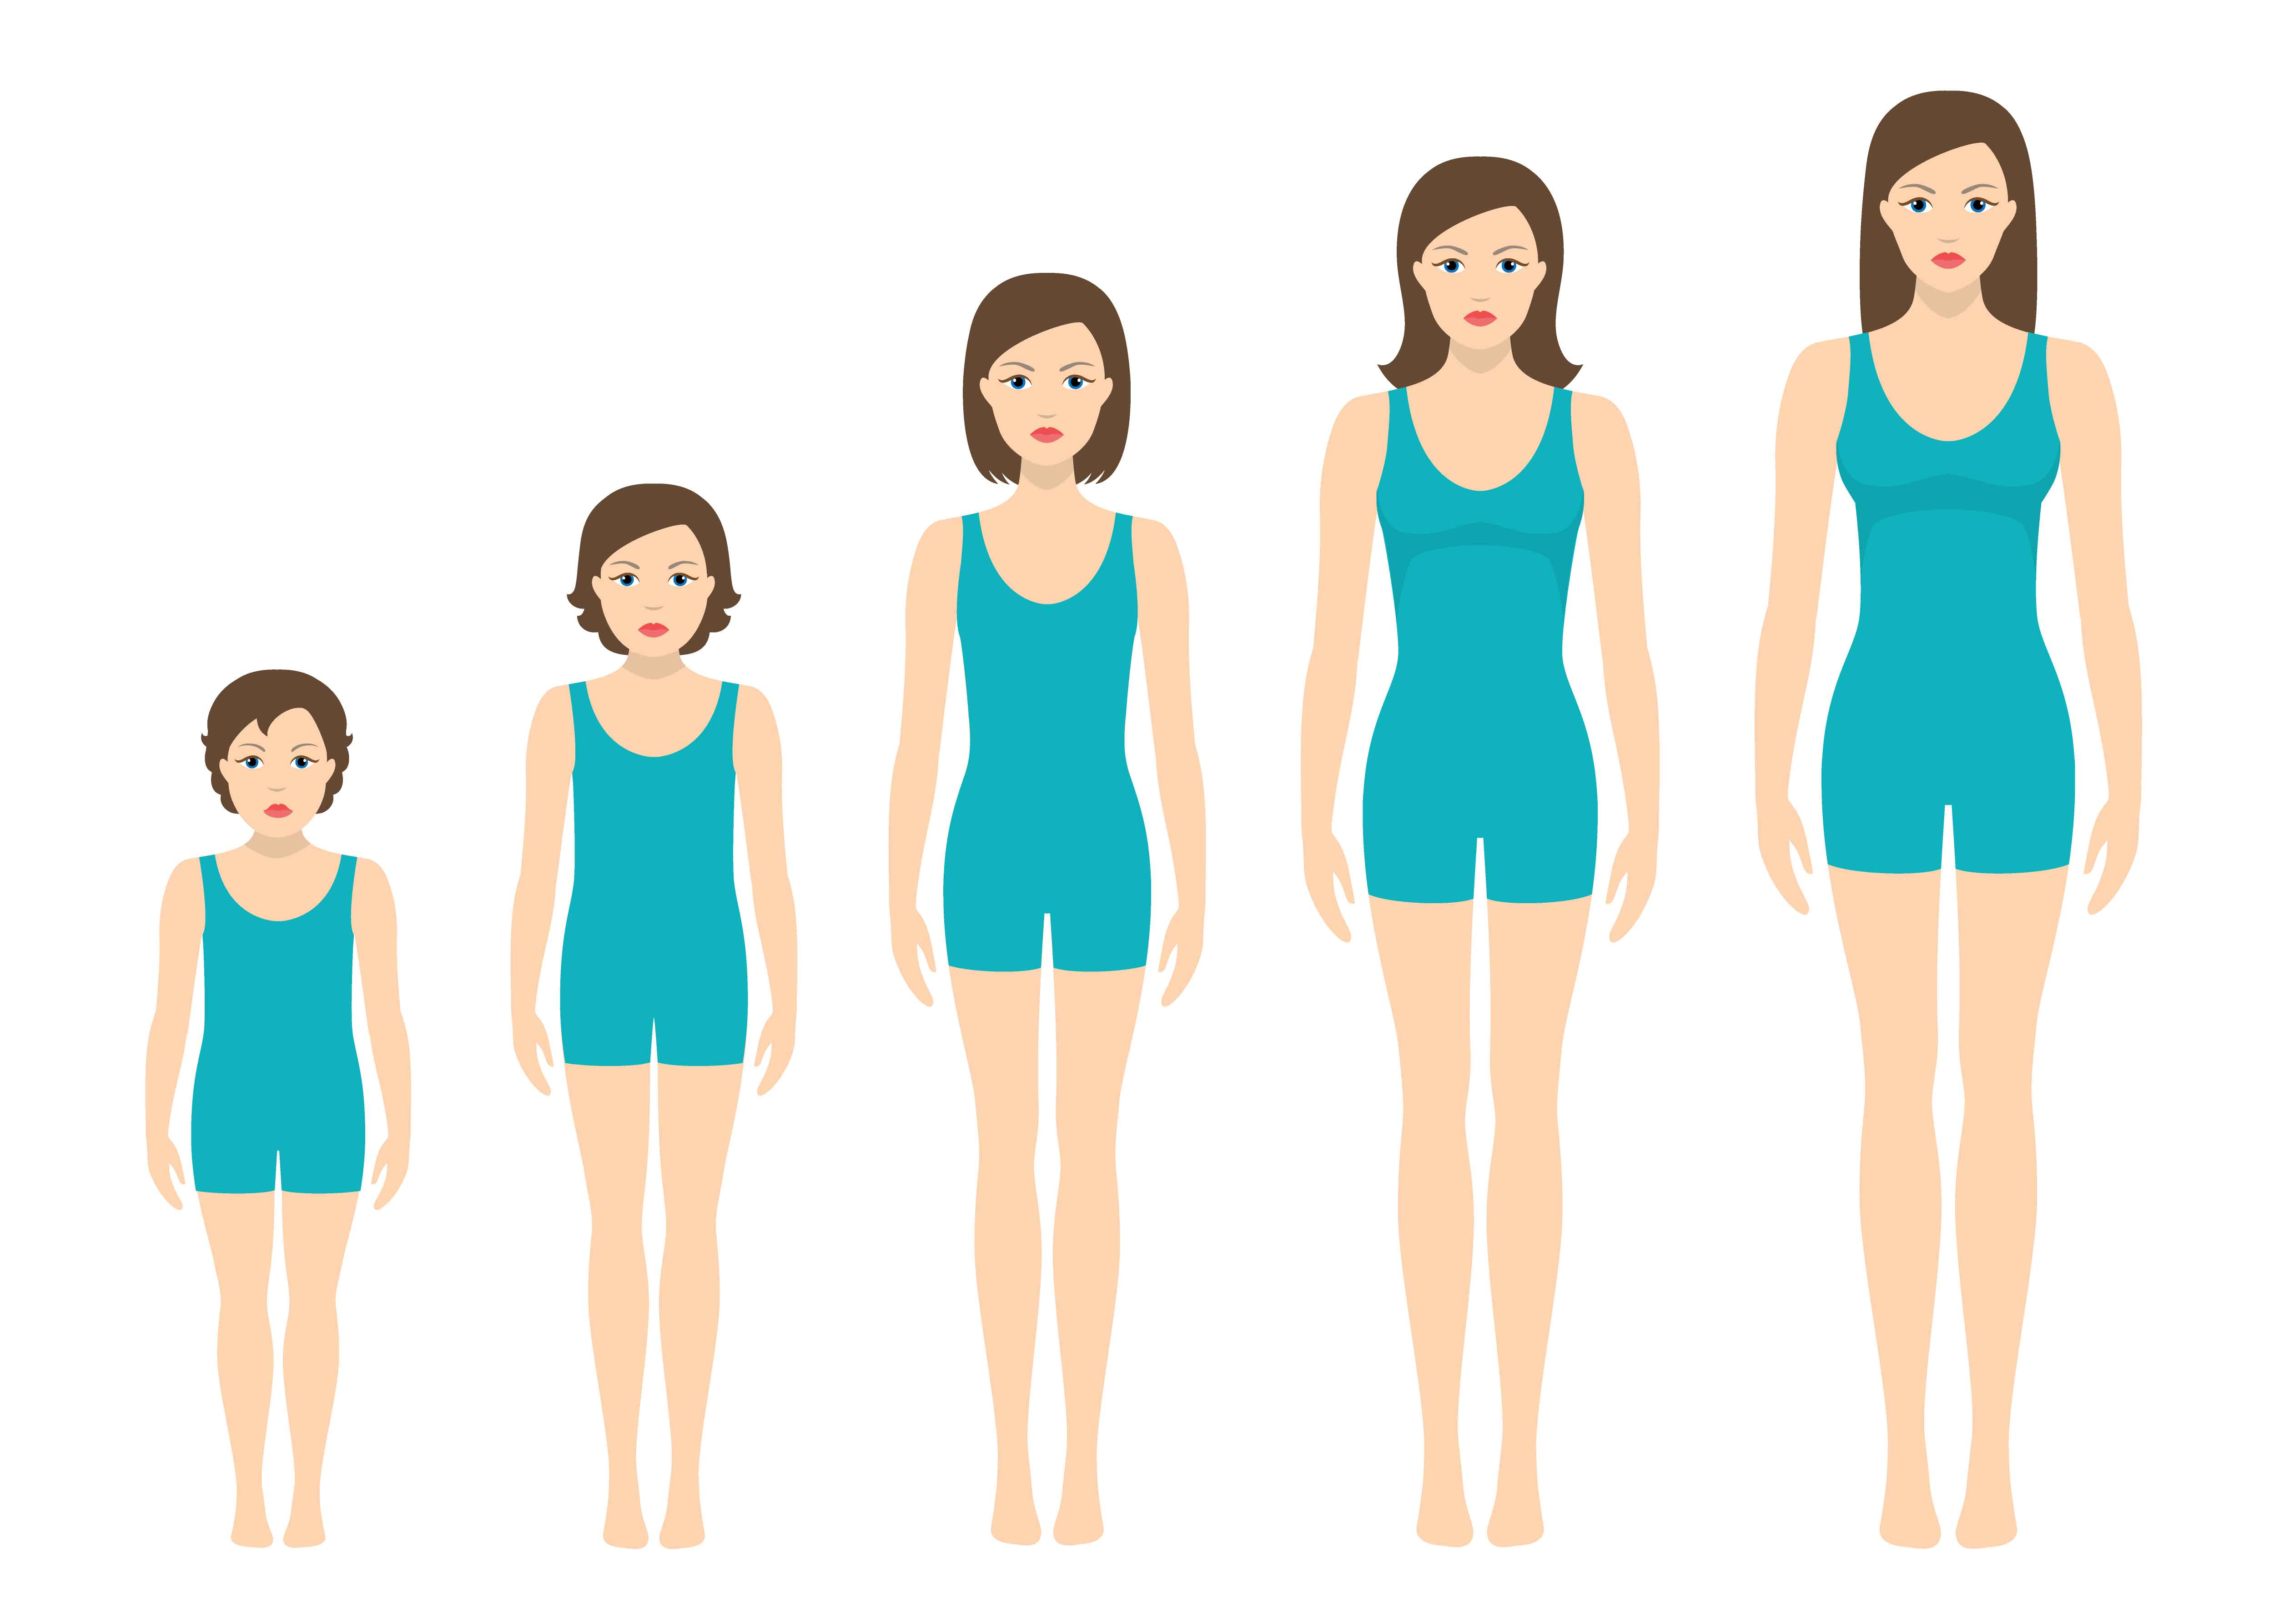 Women S Body Proportions Changing With Age Girl S Body